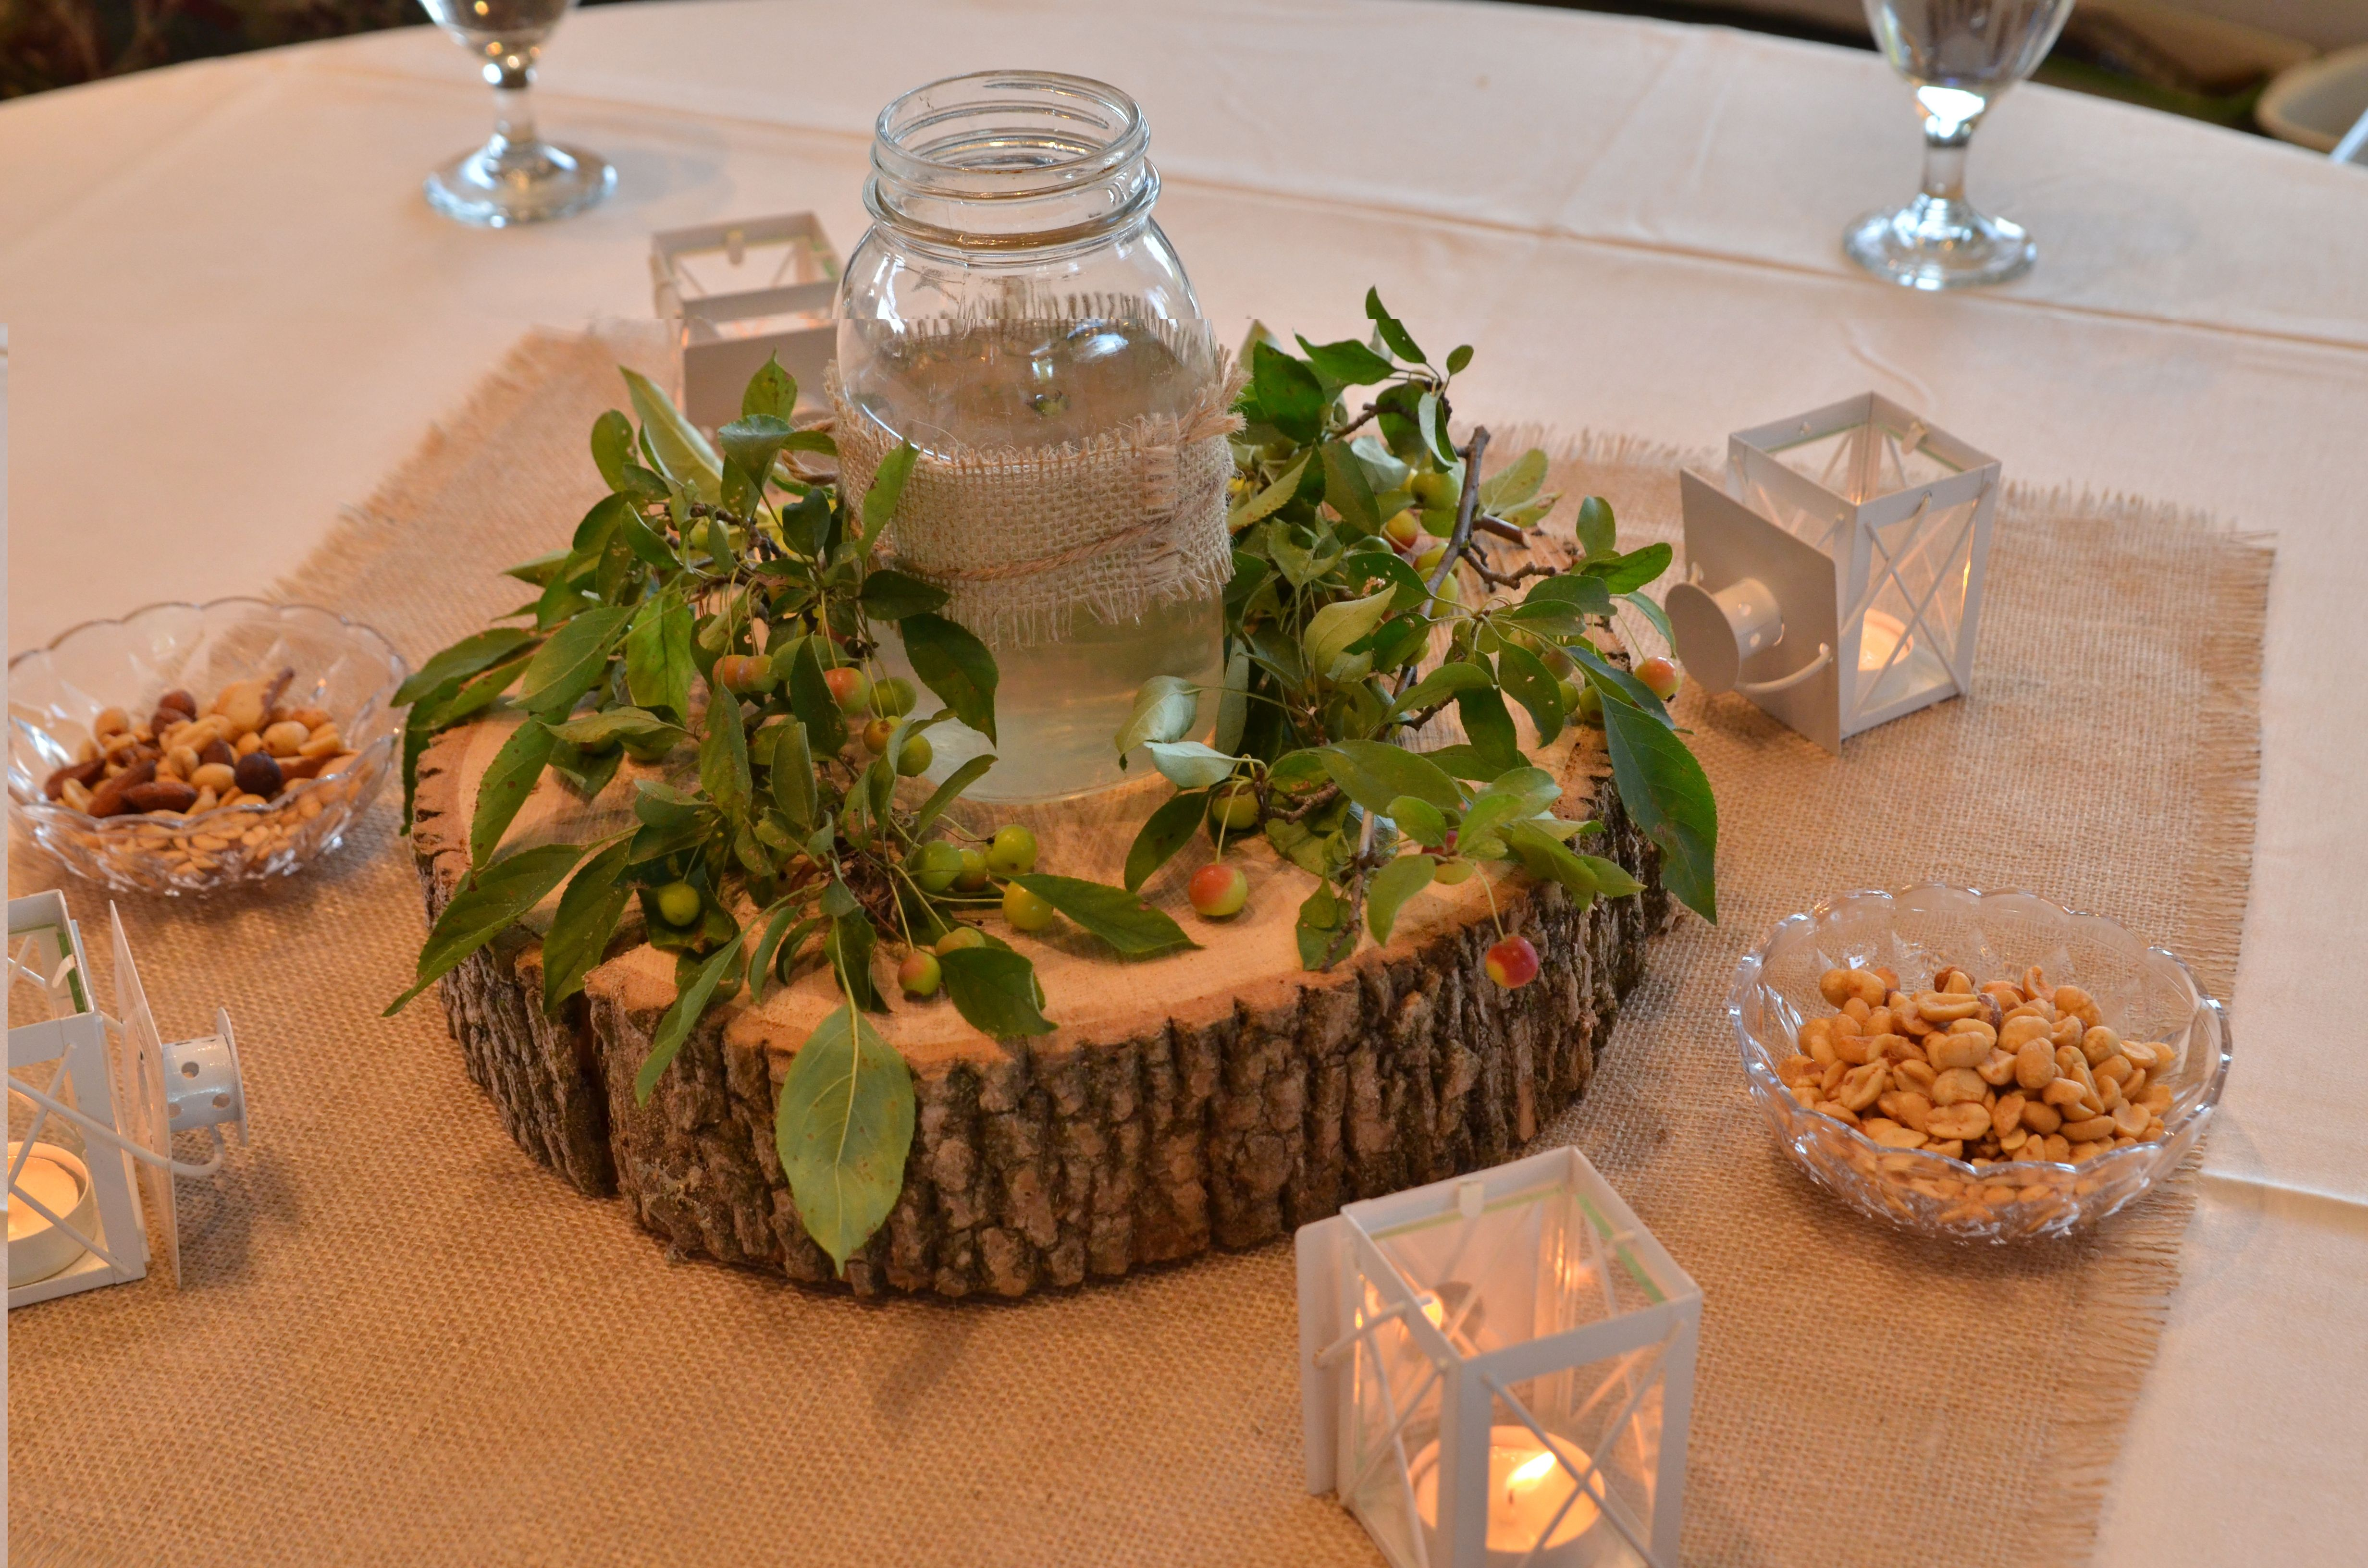 Rustic Candle Centerpieces For Wedding : Rustic candle centerpiece winter wedding pinterest